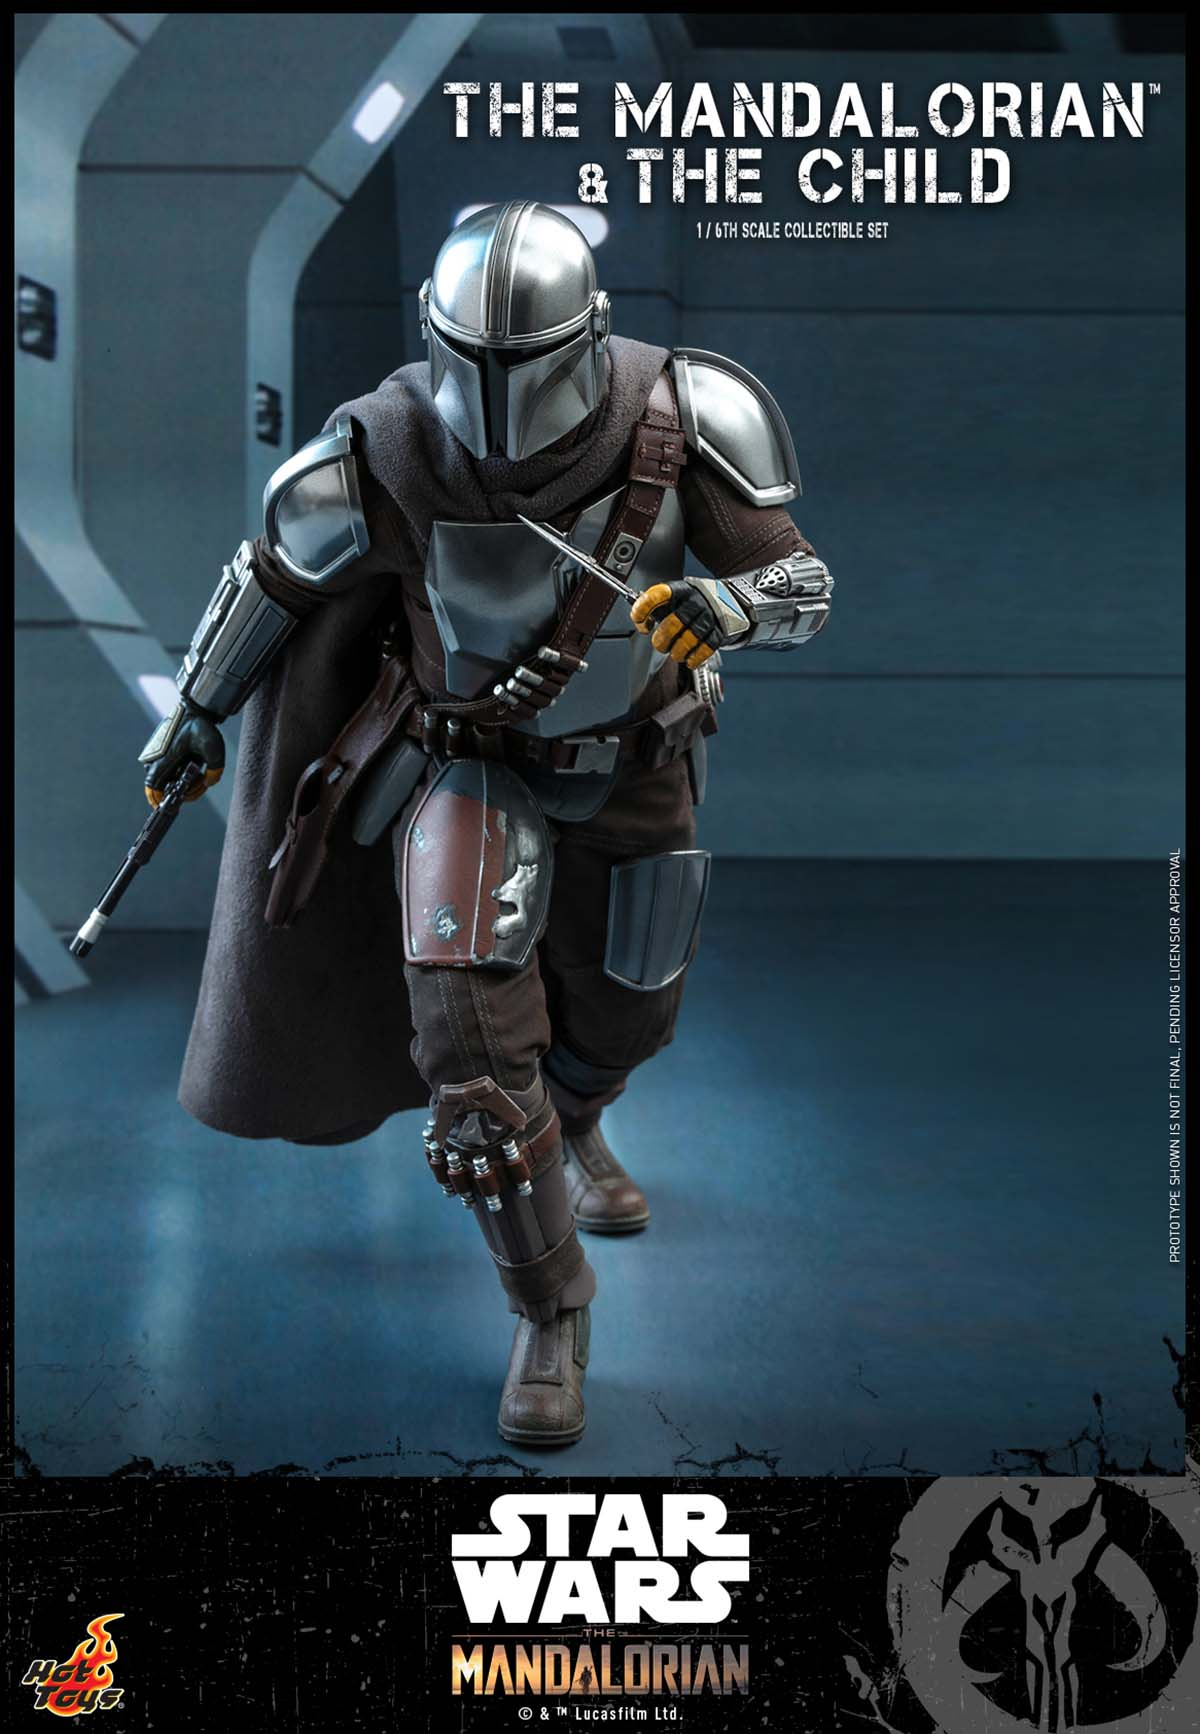 hot-toys-stm-mandalorian-and-child-collectible-set_pr5